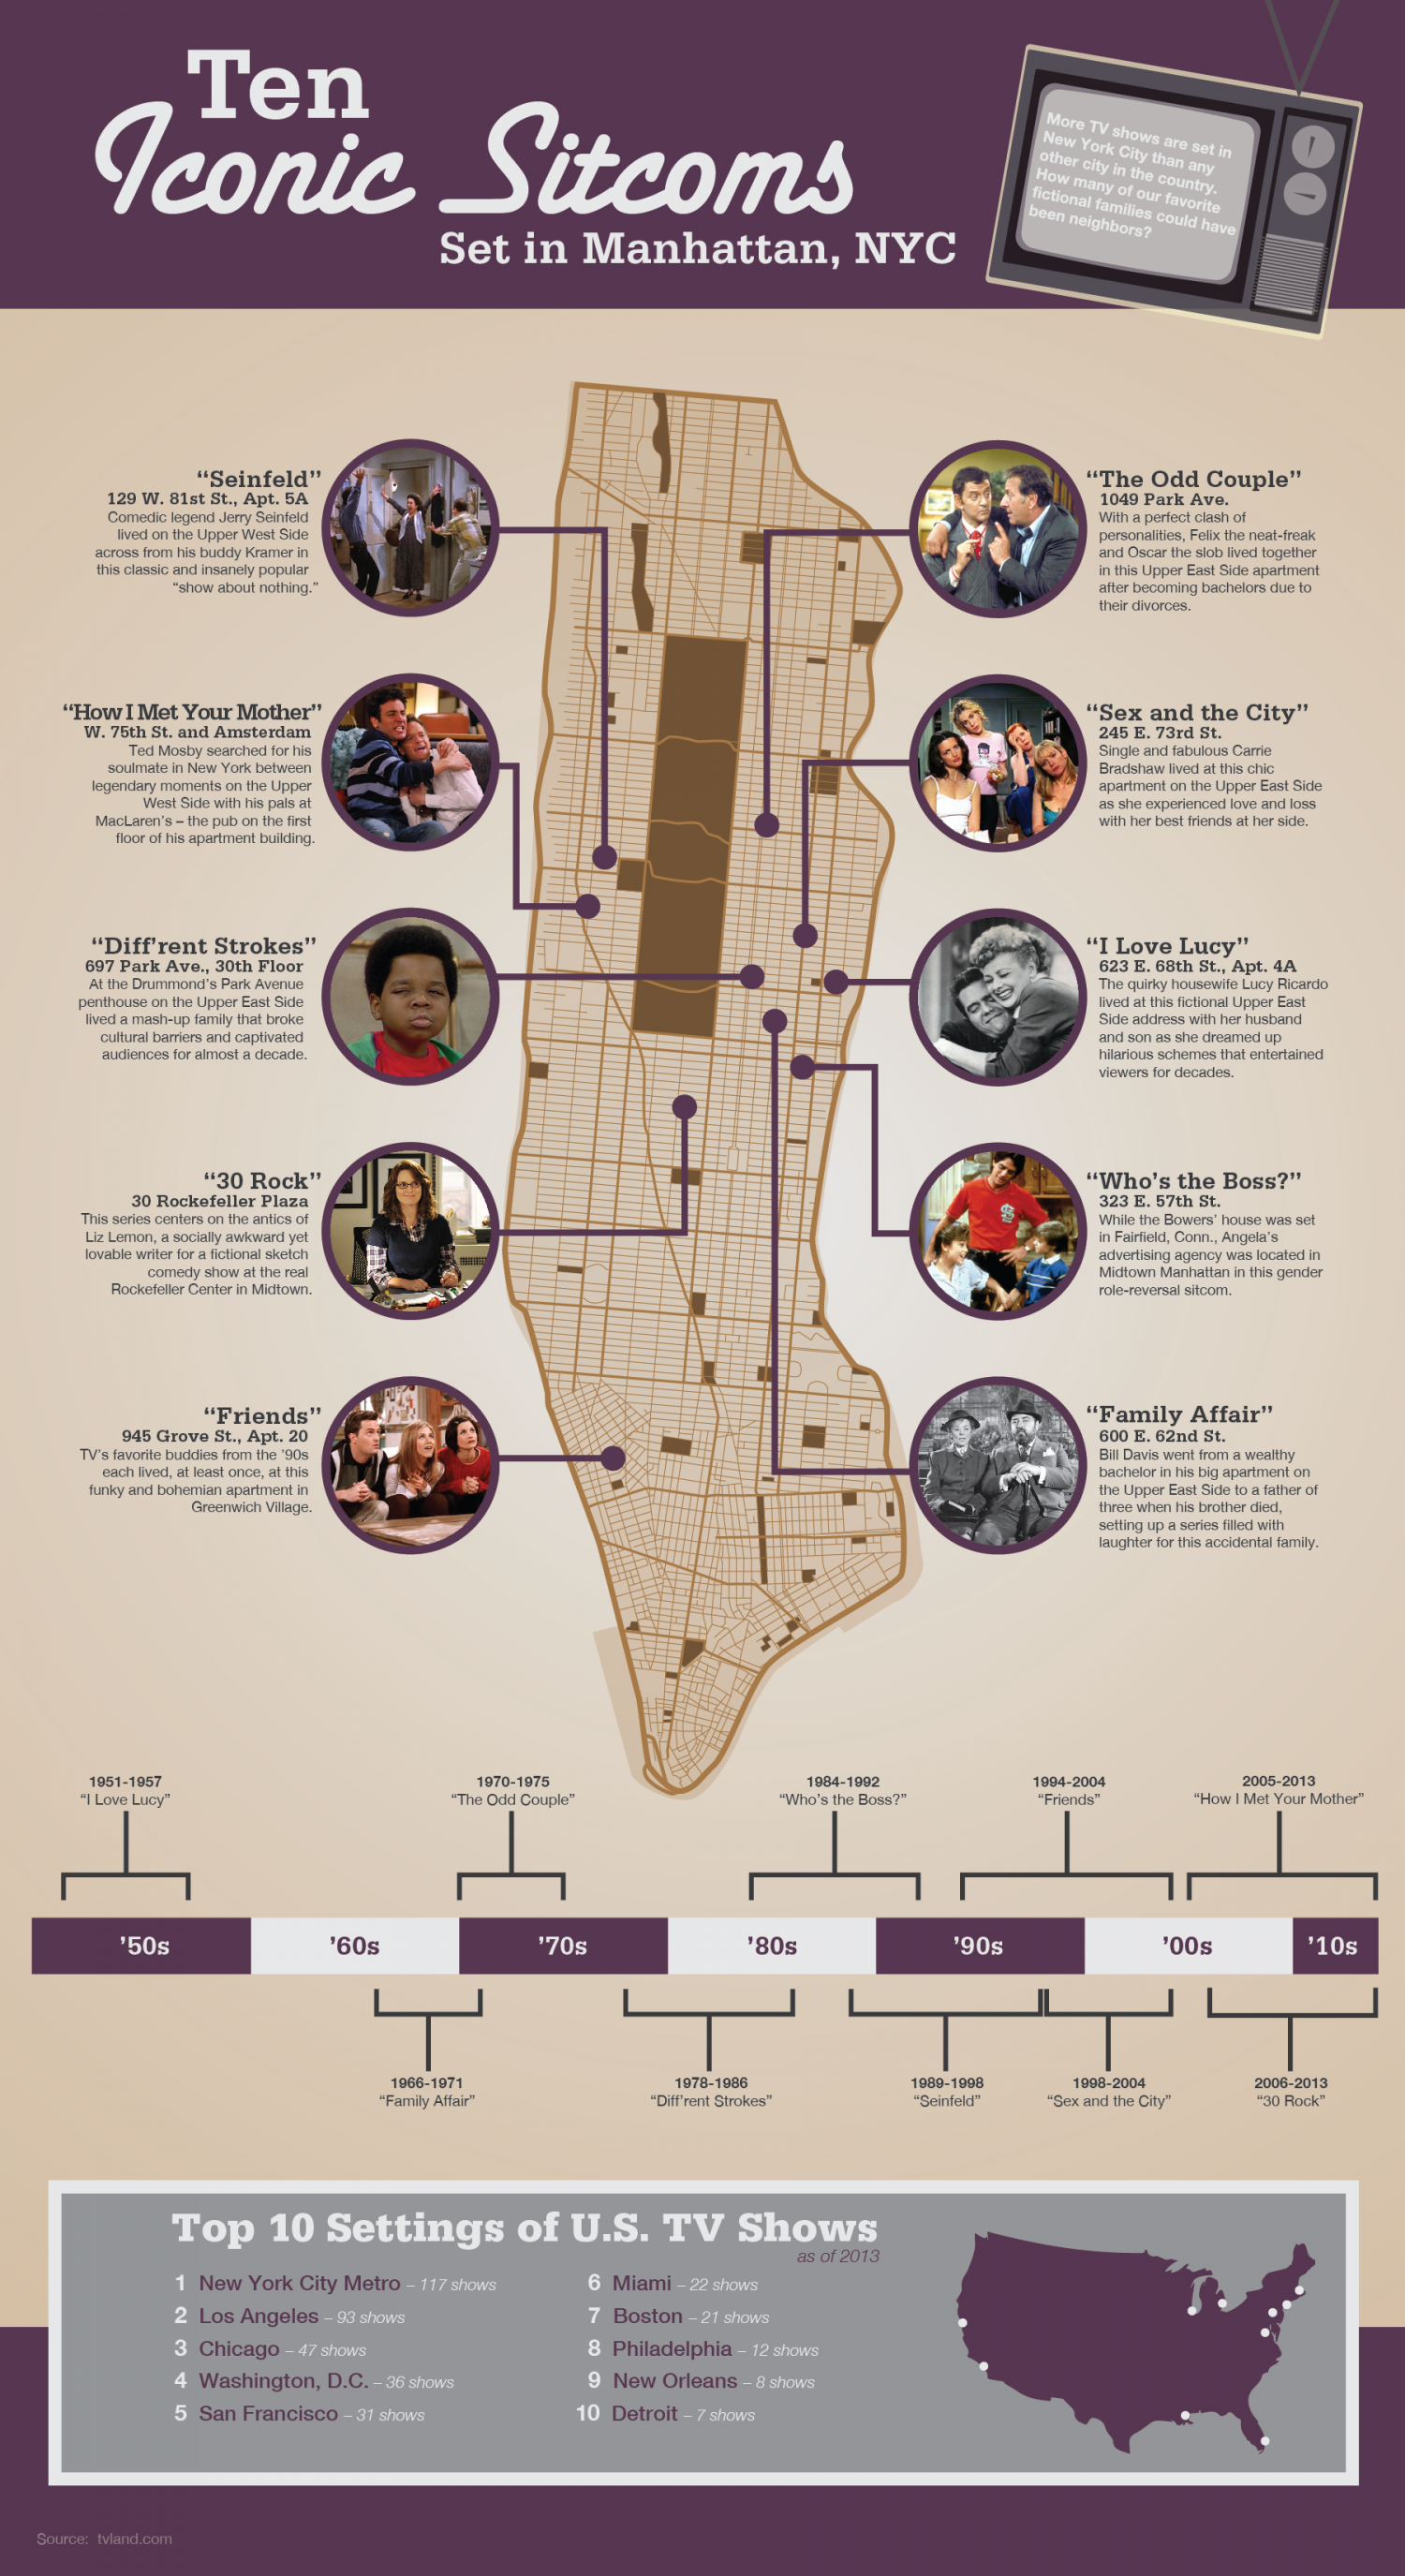 Ten Iconic Sitcoms Set in Manhattan, NYC Infographic